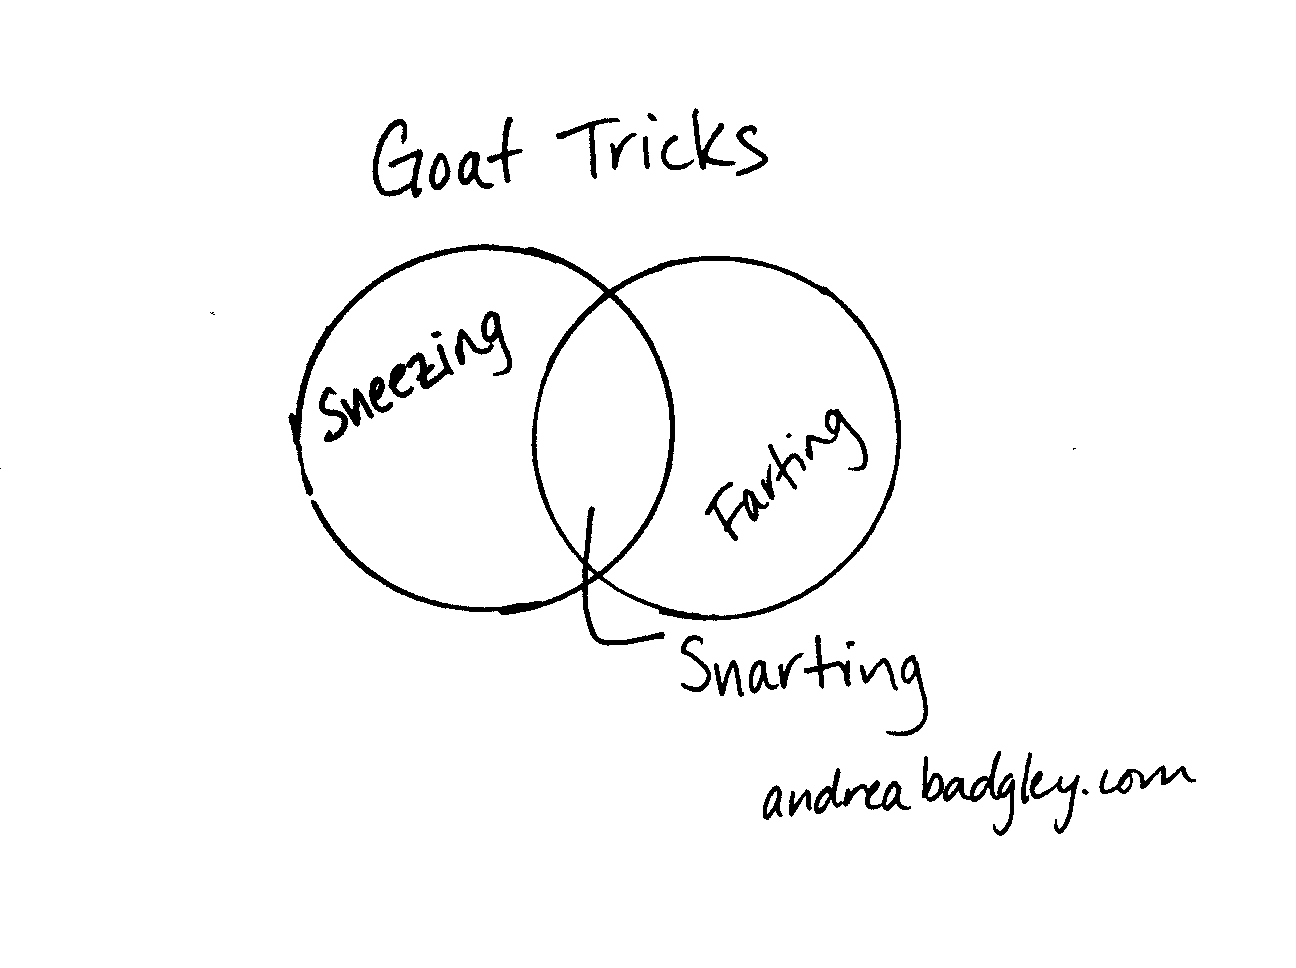 hight resolution of farting goats venn diagram with sneezing and snarting